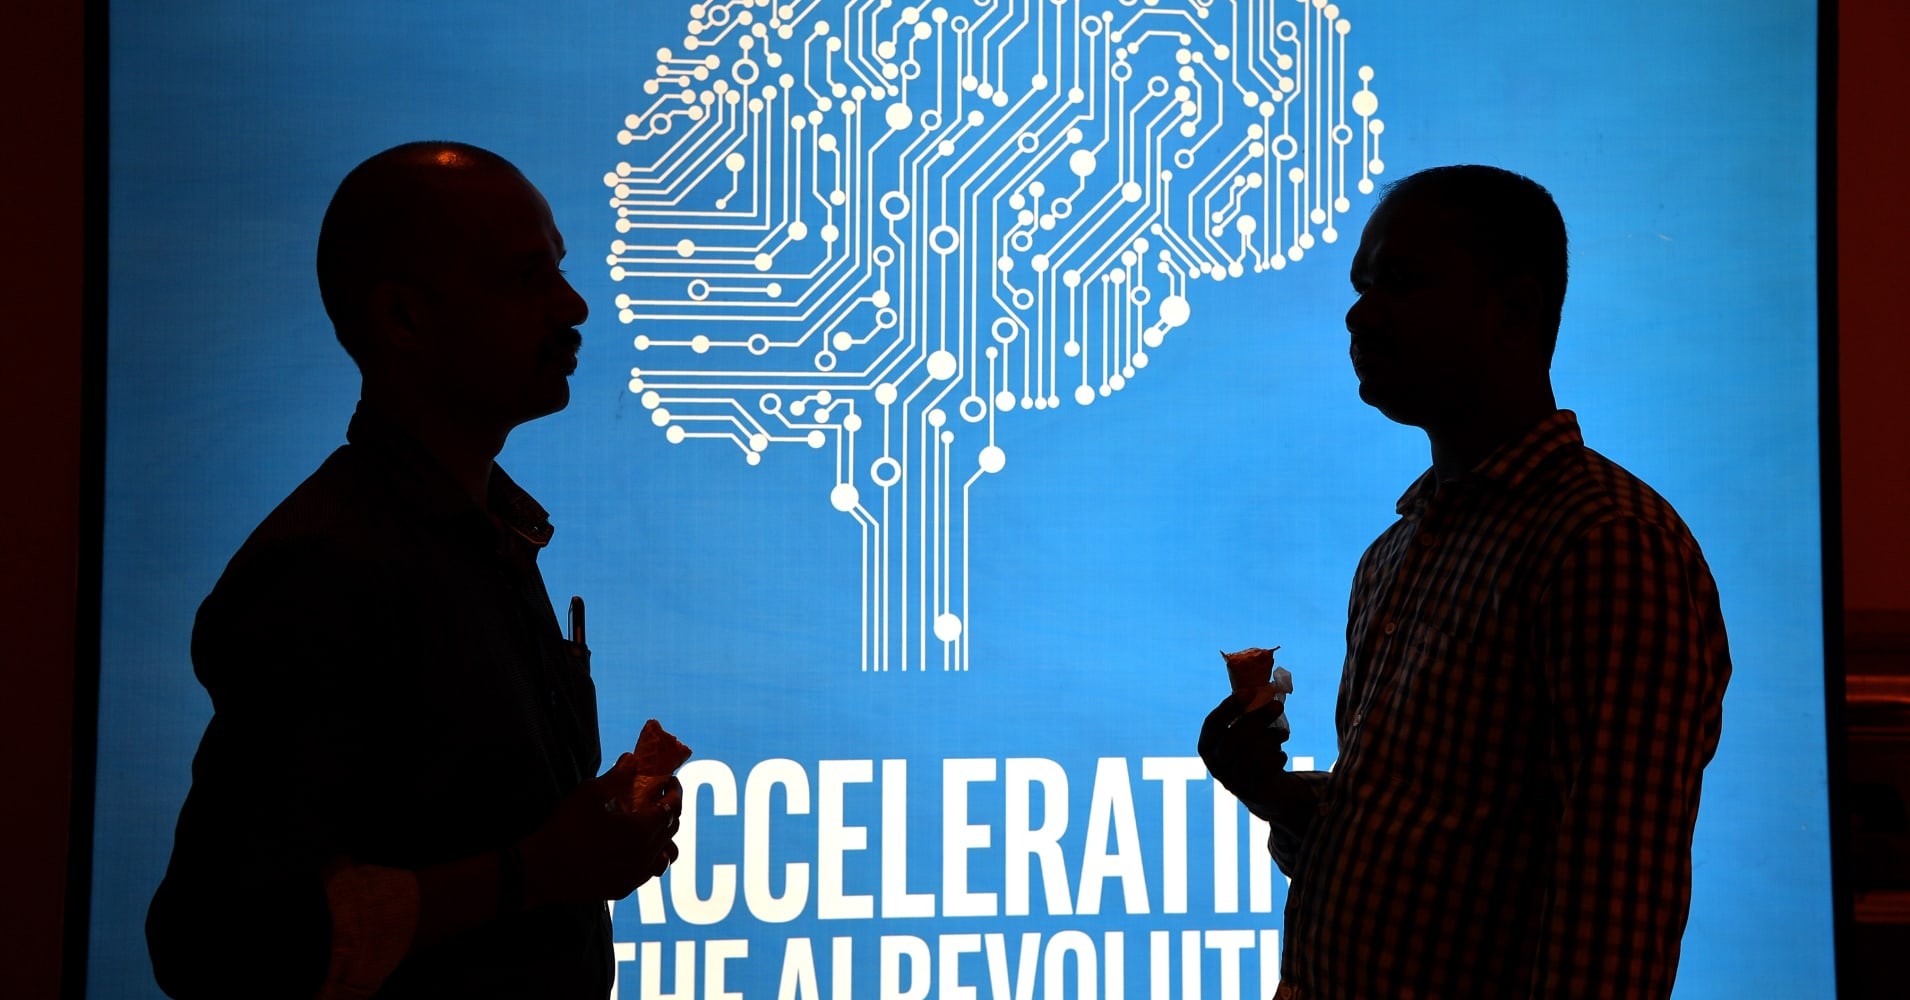 Artificial intelligence could spark 'radical' economic boom, according to new research